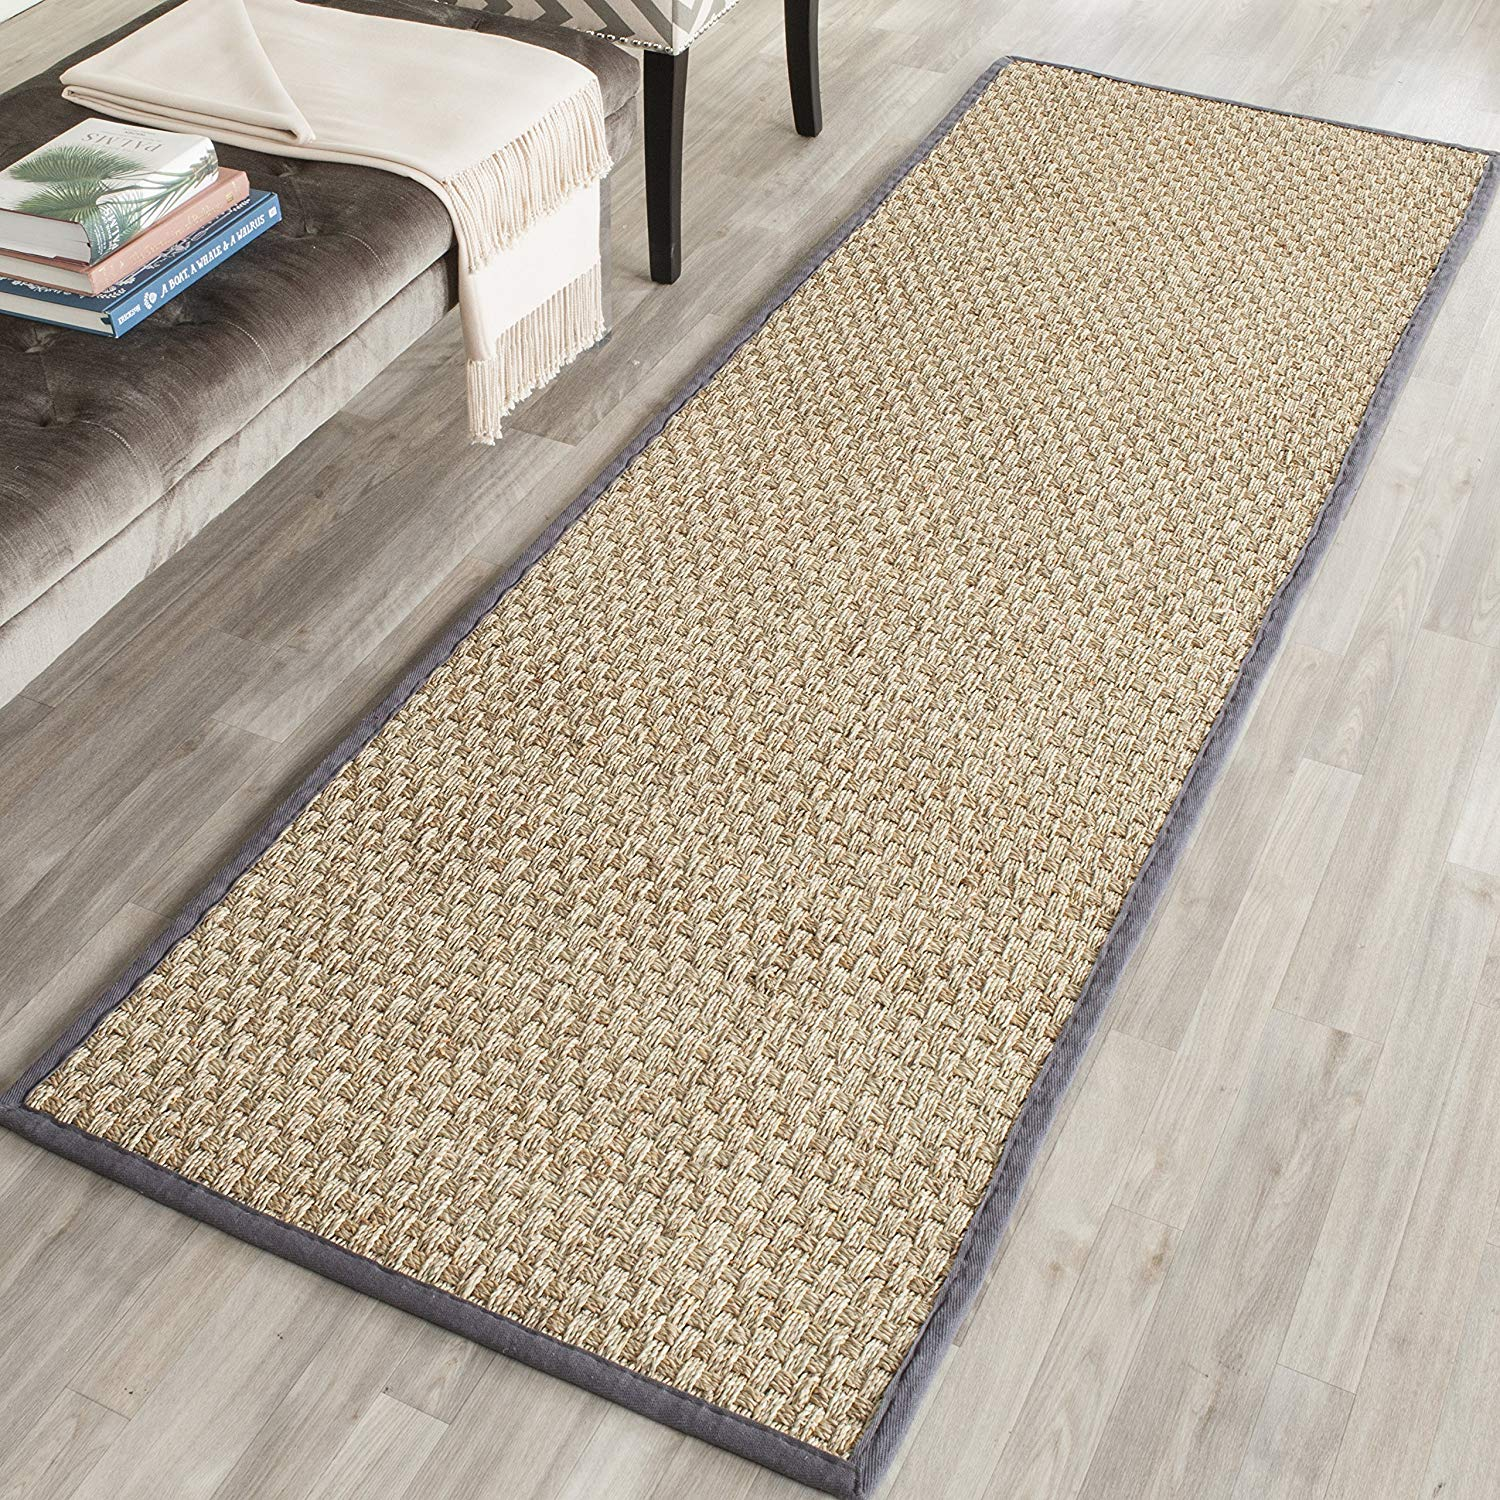 A woven rug brings in a quintessential farmhouse feel, this Safavieh Basketweave Natural and Dark Grey Rug could be used in an entryway or in front of the kitchen sink to add contrast and texture to your space.